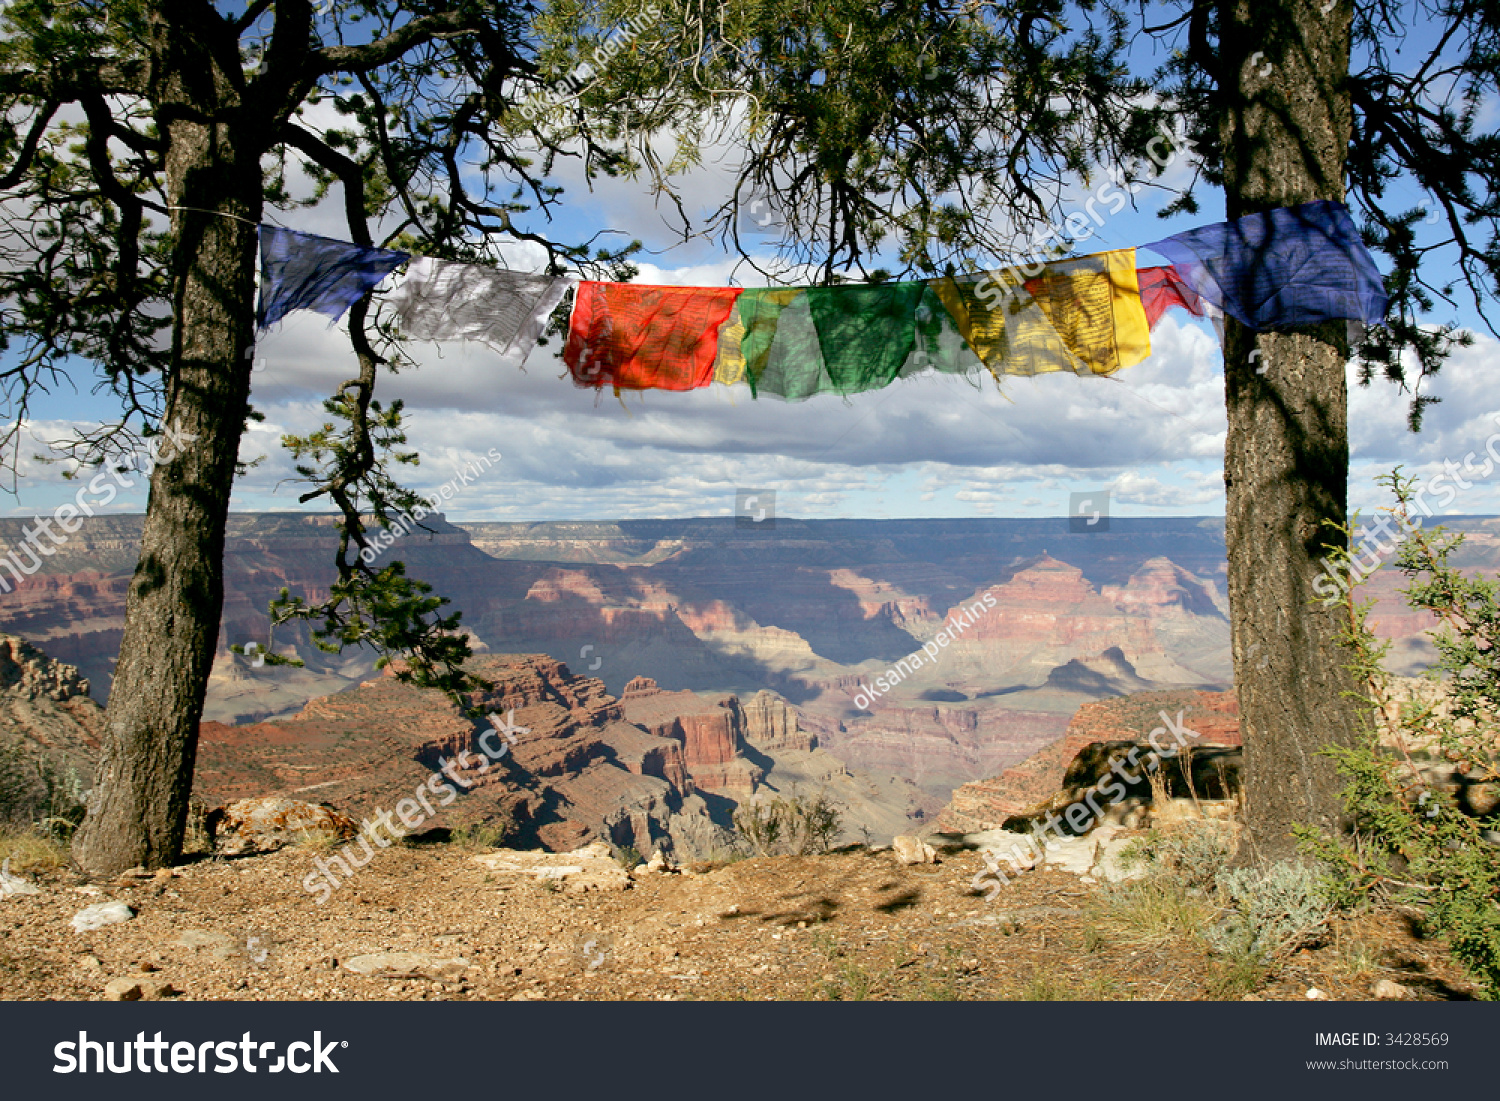 grand canyon buddhist singles Singles travel international's exclusive singles tours range from caribbean cruises for singles to fascinating, bucket list destinations like antarctica, galapagos.